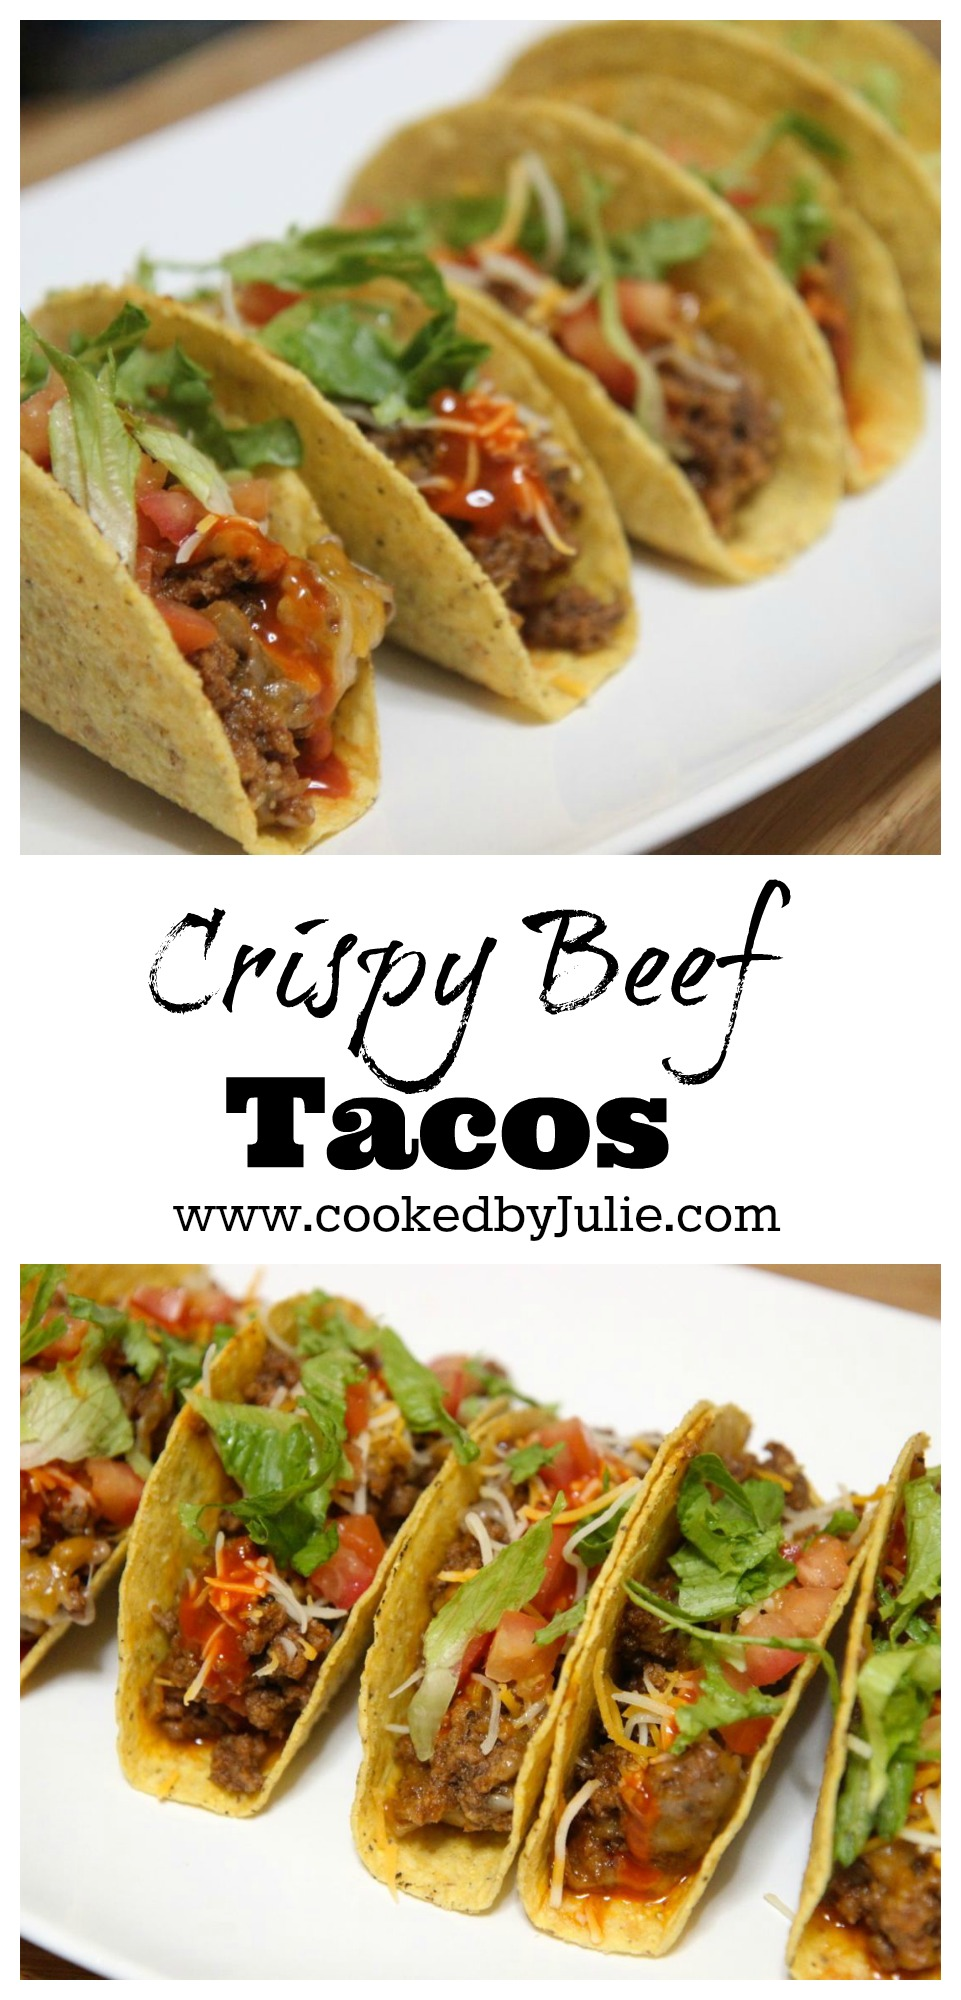 Learn how to make Crispy Beef Tacos from Cooked by Julie